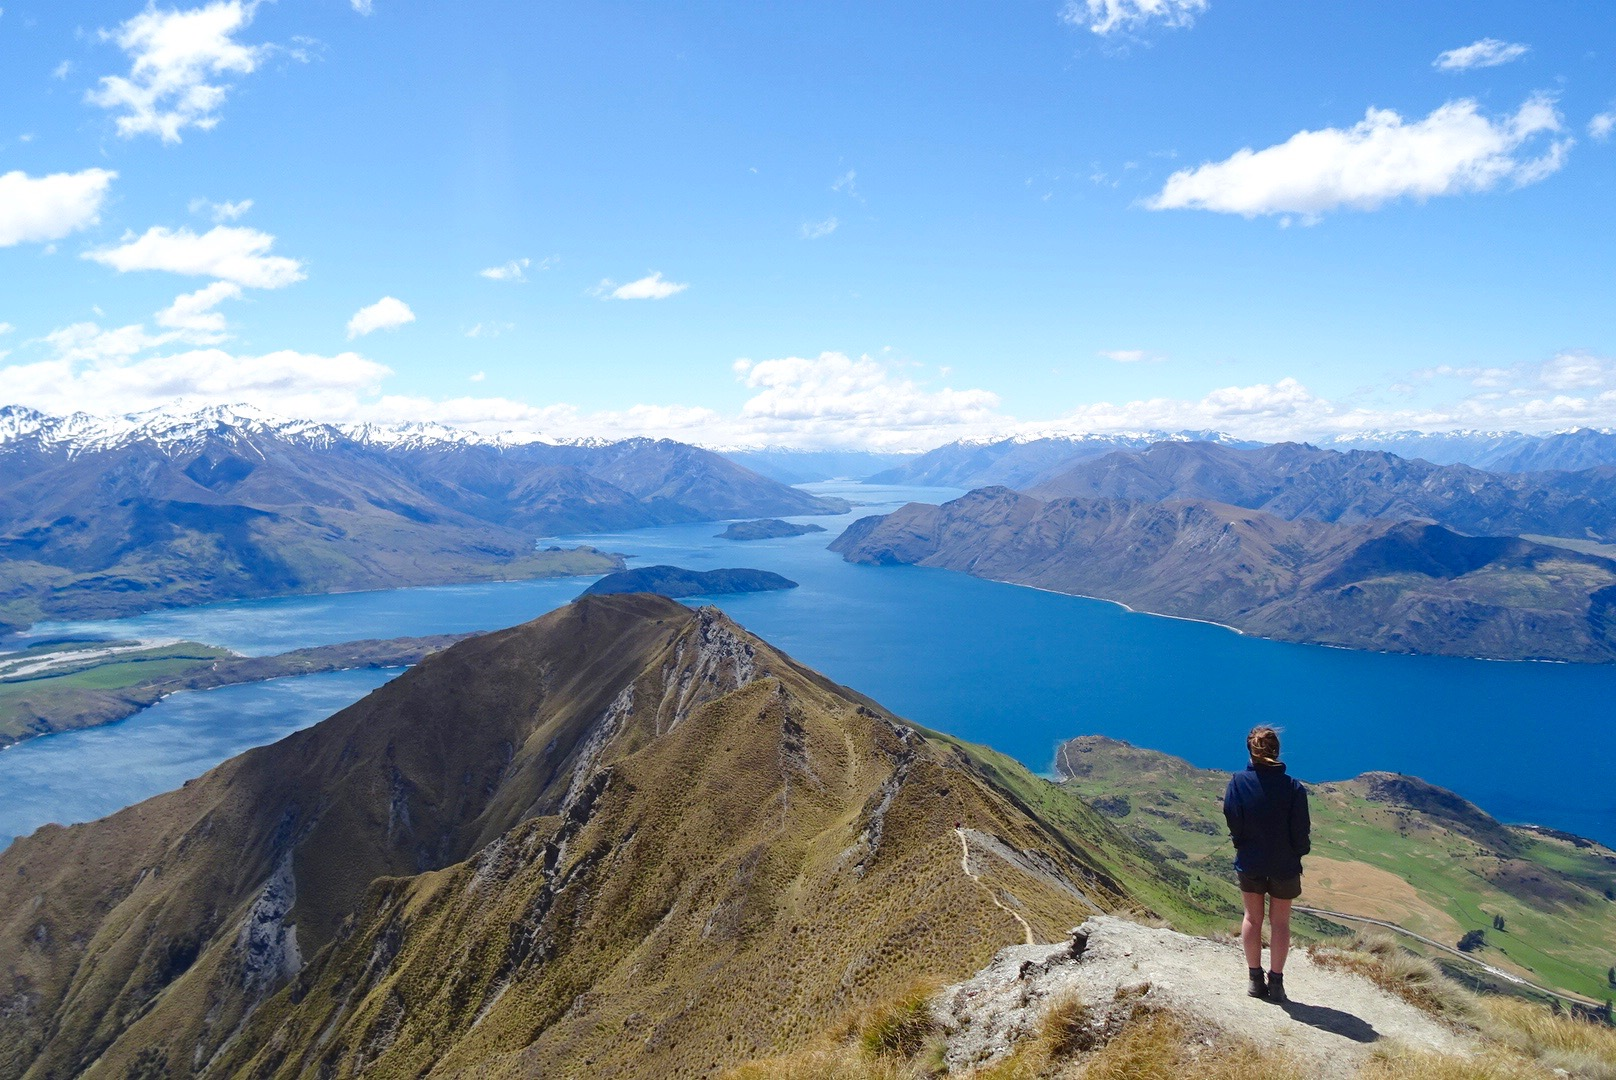 Atop Mount Roy, Wanaka -That view more than made up for the 3 hour trek!